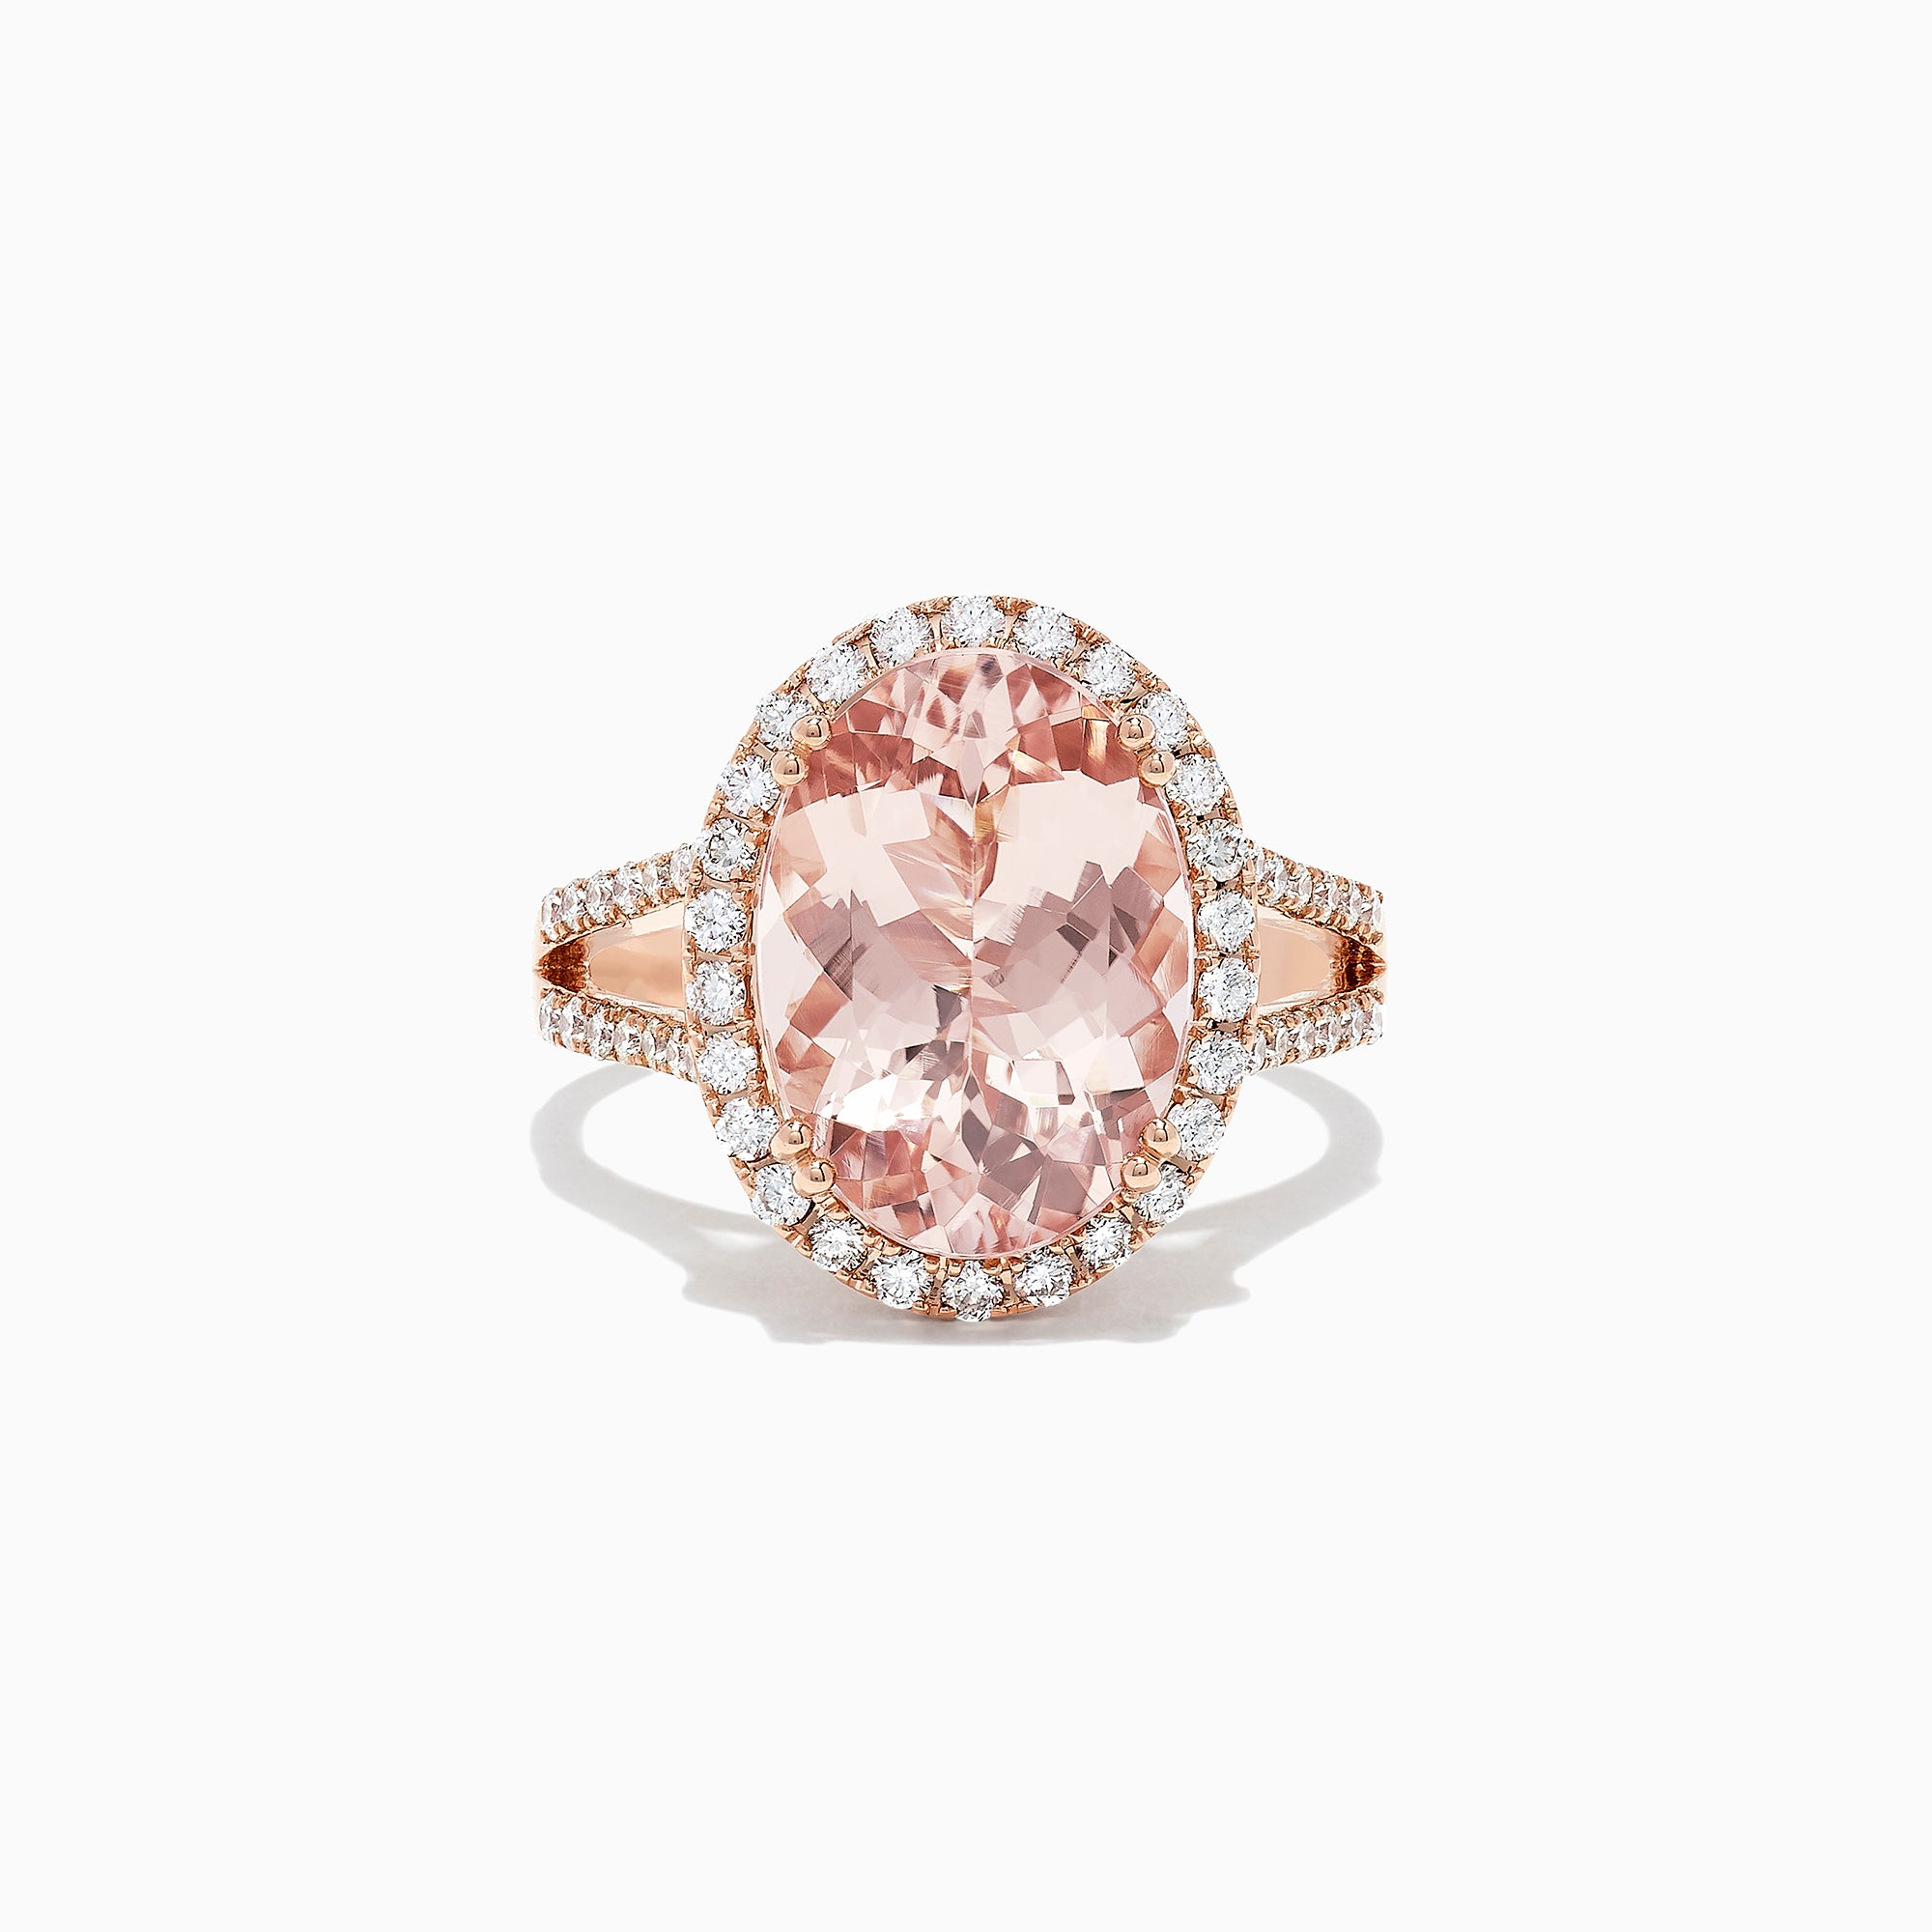 Effy Blush 14K Rose Gold Morganite and Diamond Ring, 6.13 TCW